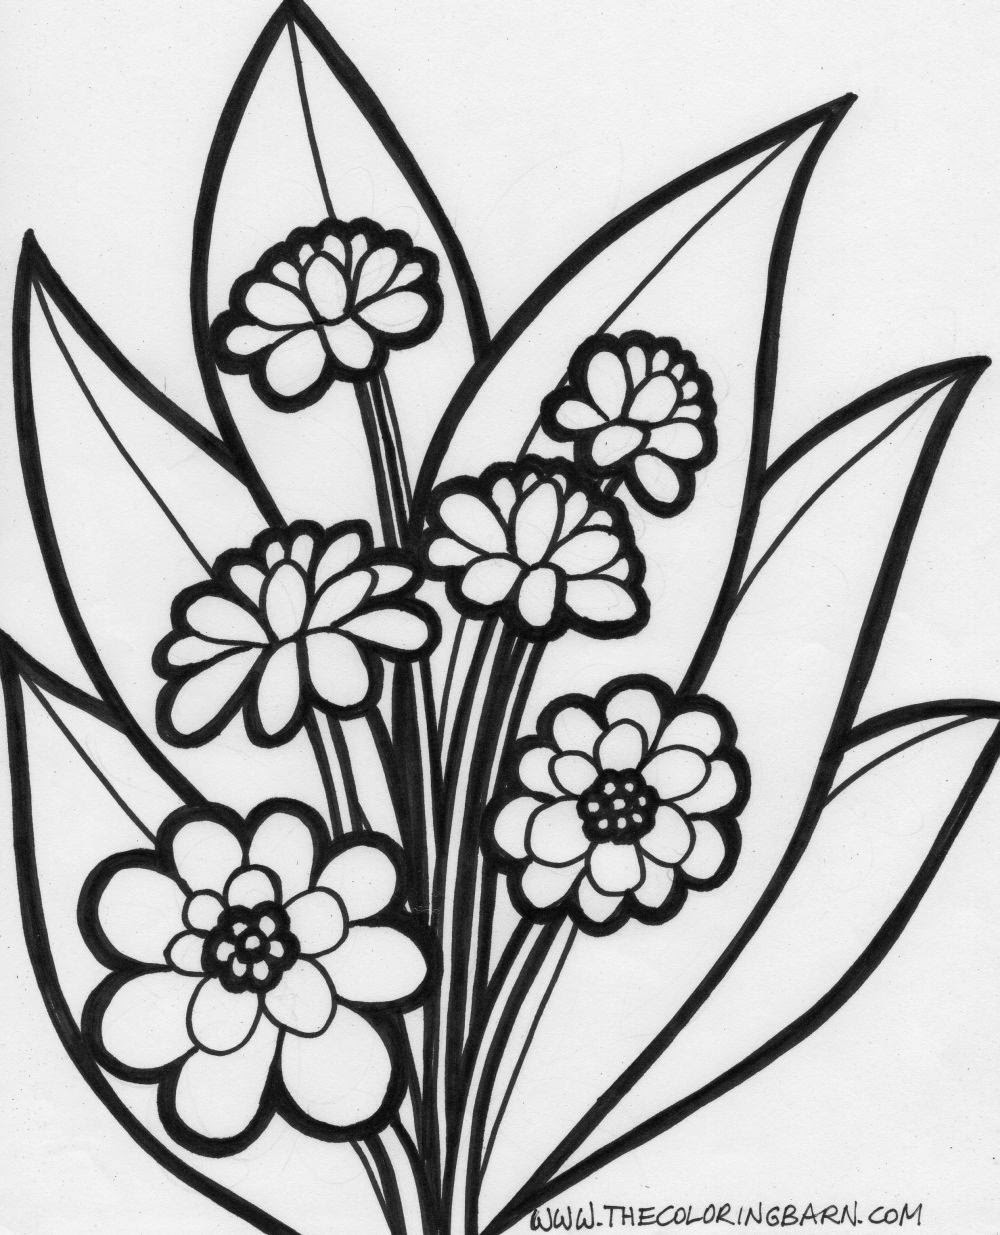 Coloring pages of flower buds - Coloring Pages Of Flower Buds Flower Coloring Pages Printable Free Flower Coloring Pages 8